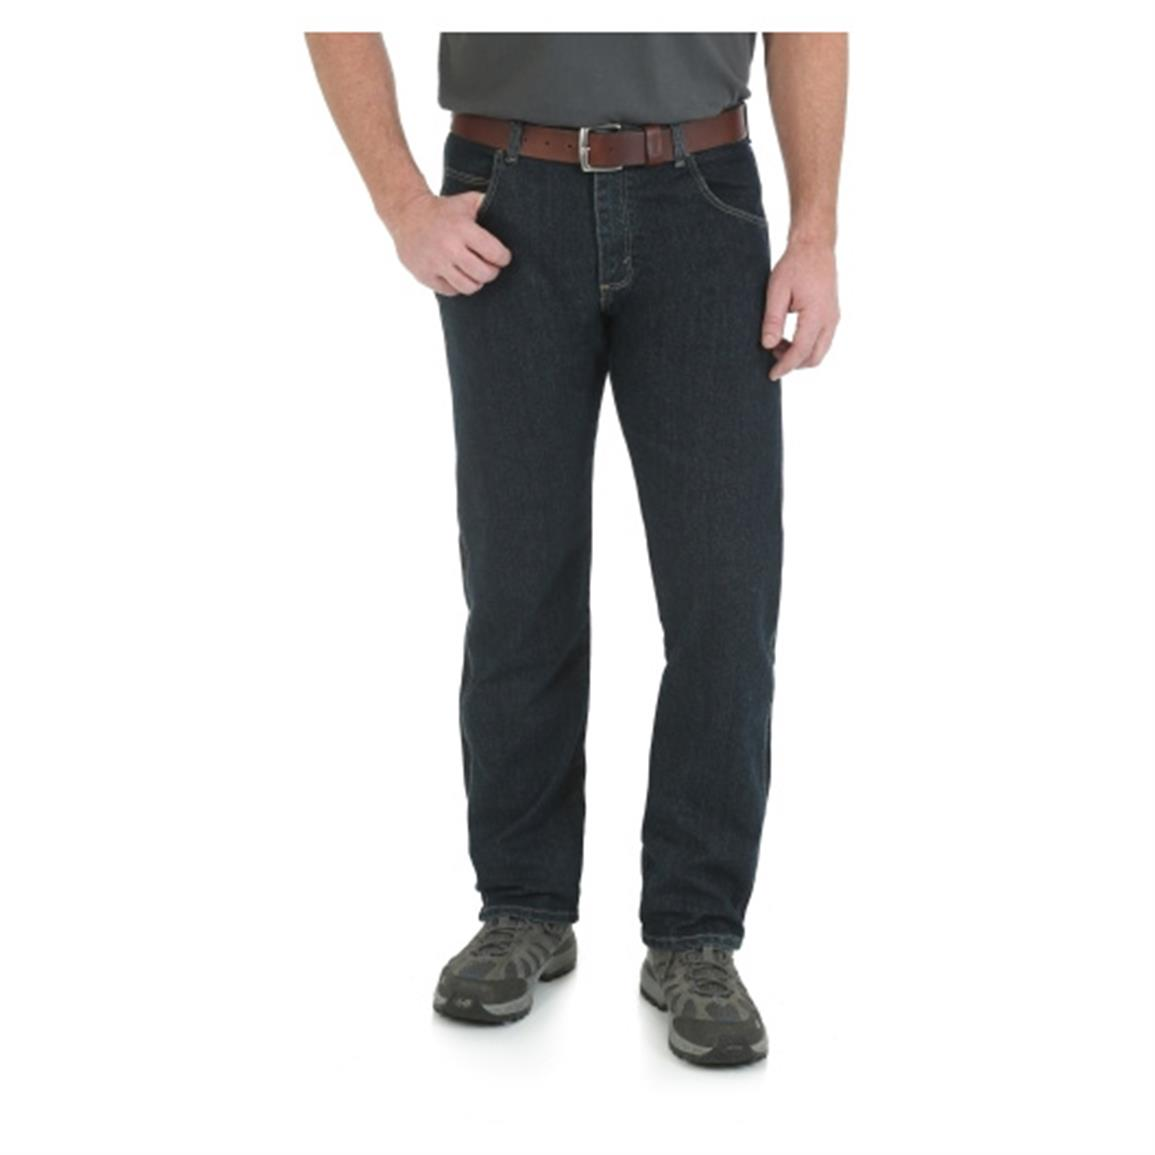 Wrangler Rugged Wear Men's Regular Fit Jean, Midnight